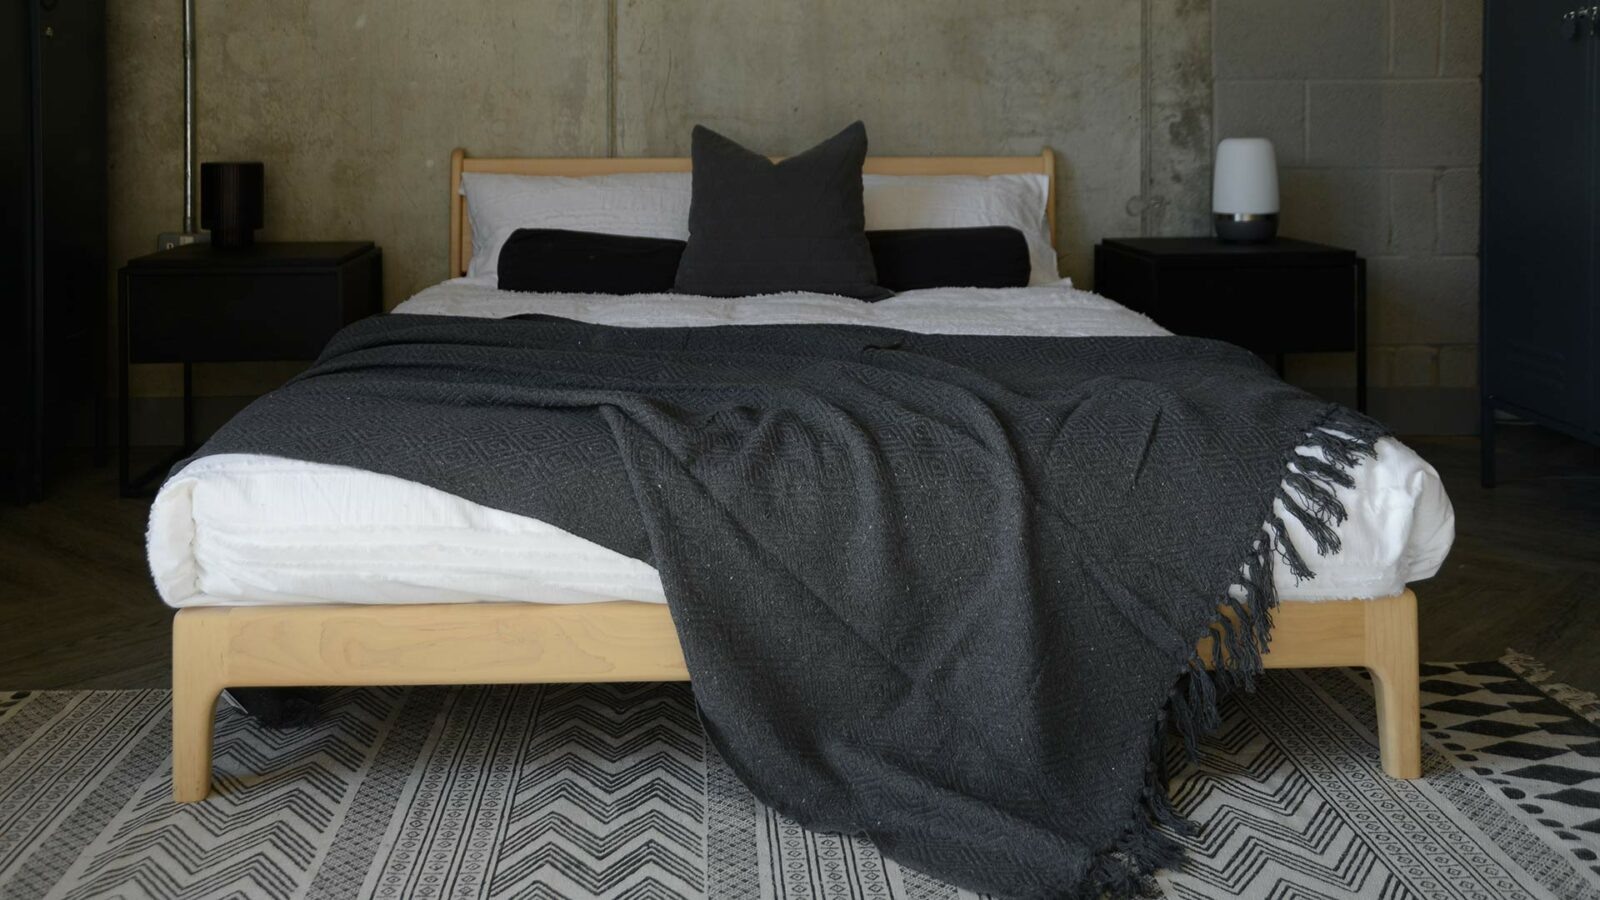 charcoal grey textured cotton rich throw shown on a kingsize wooden bed